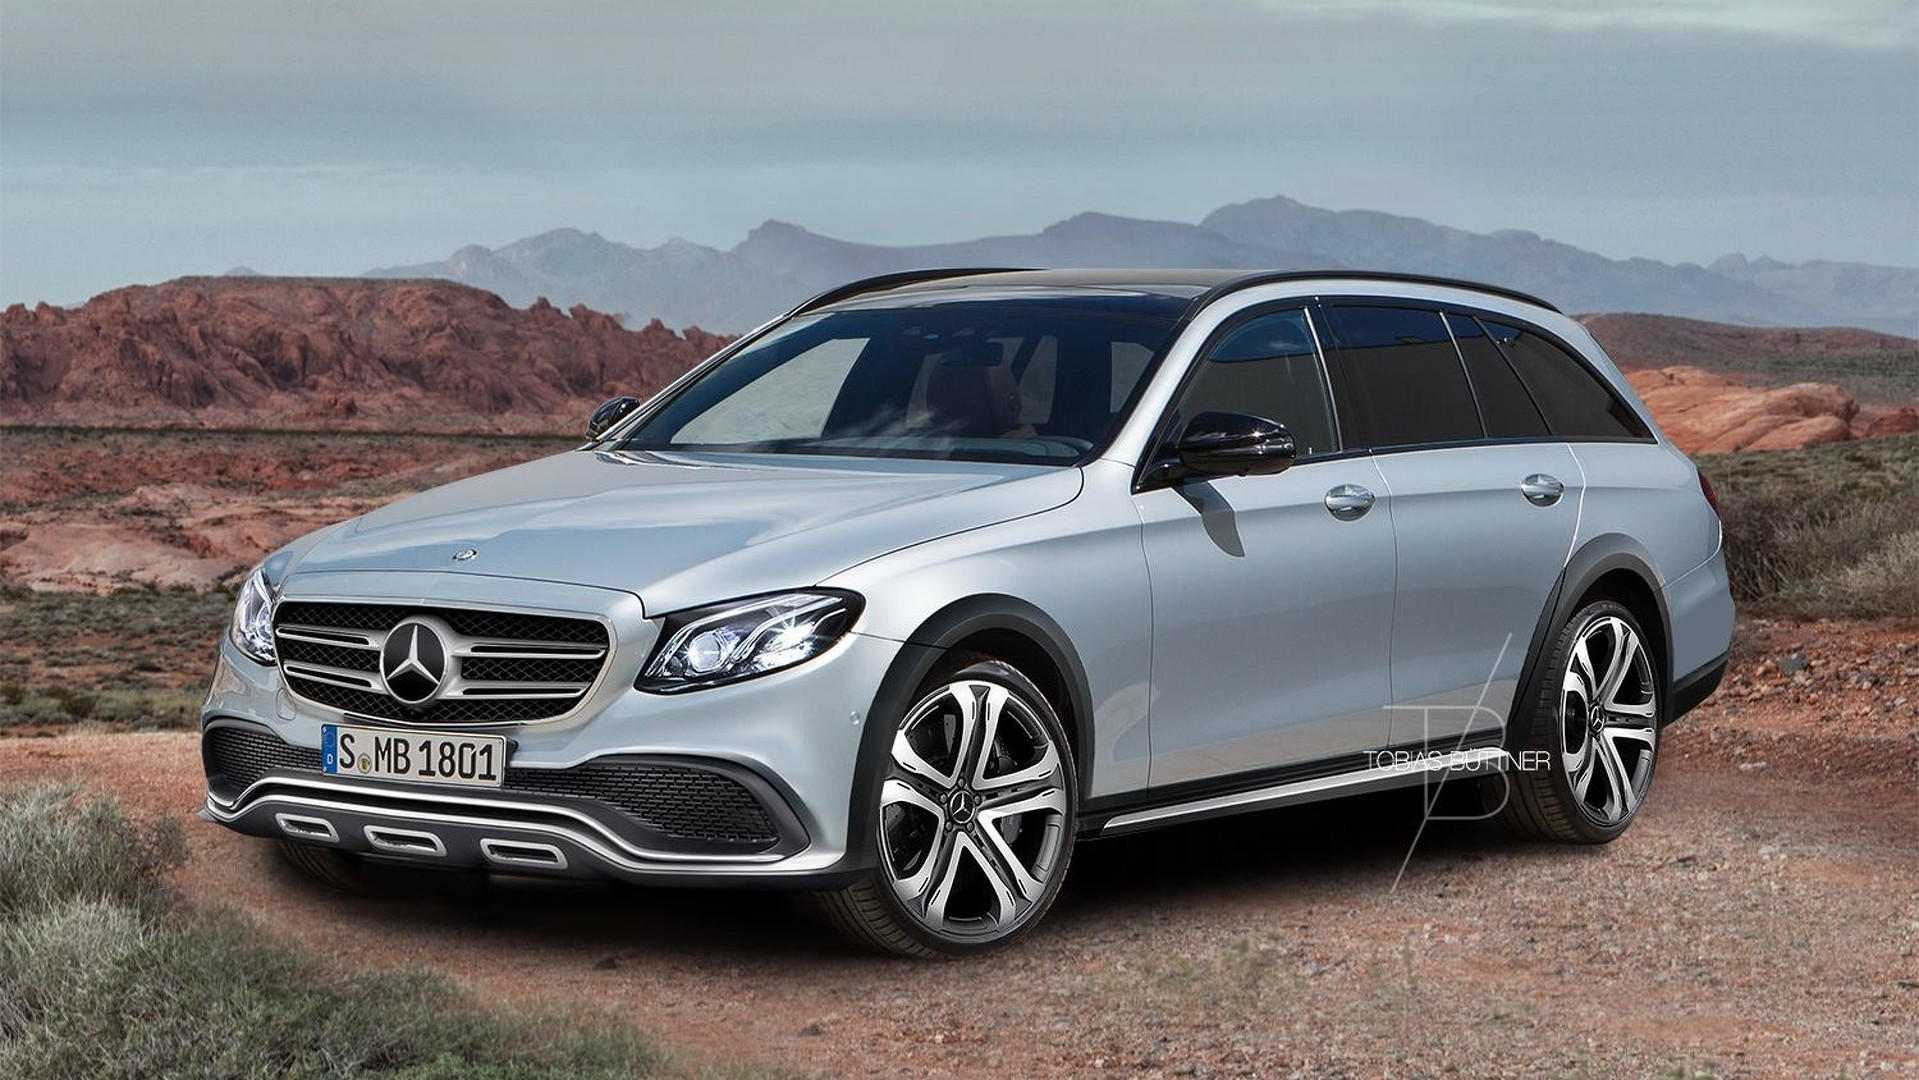 Mercedes E Class All Terrain Speculatively Rendered